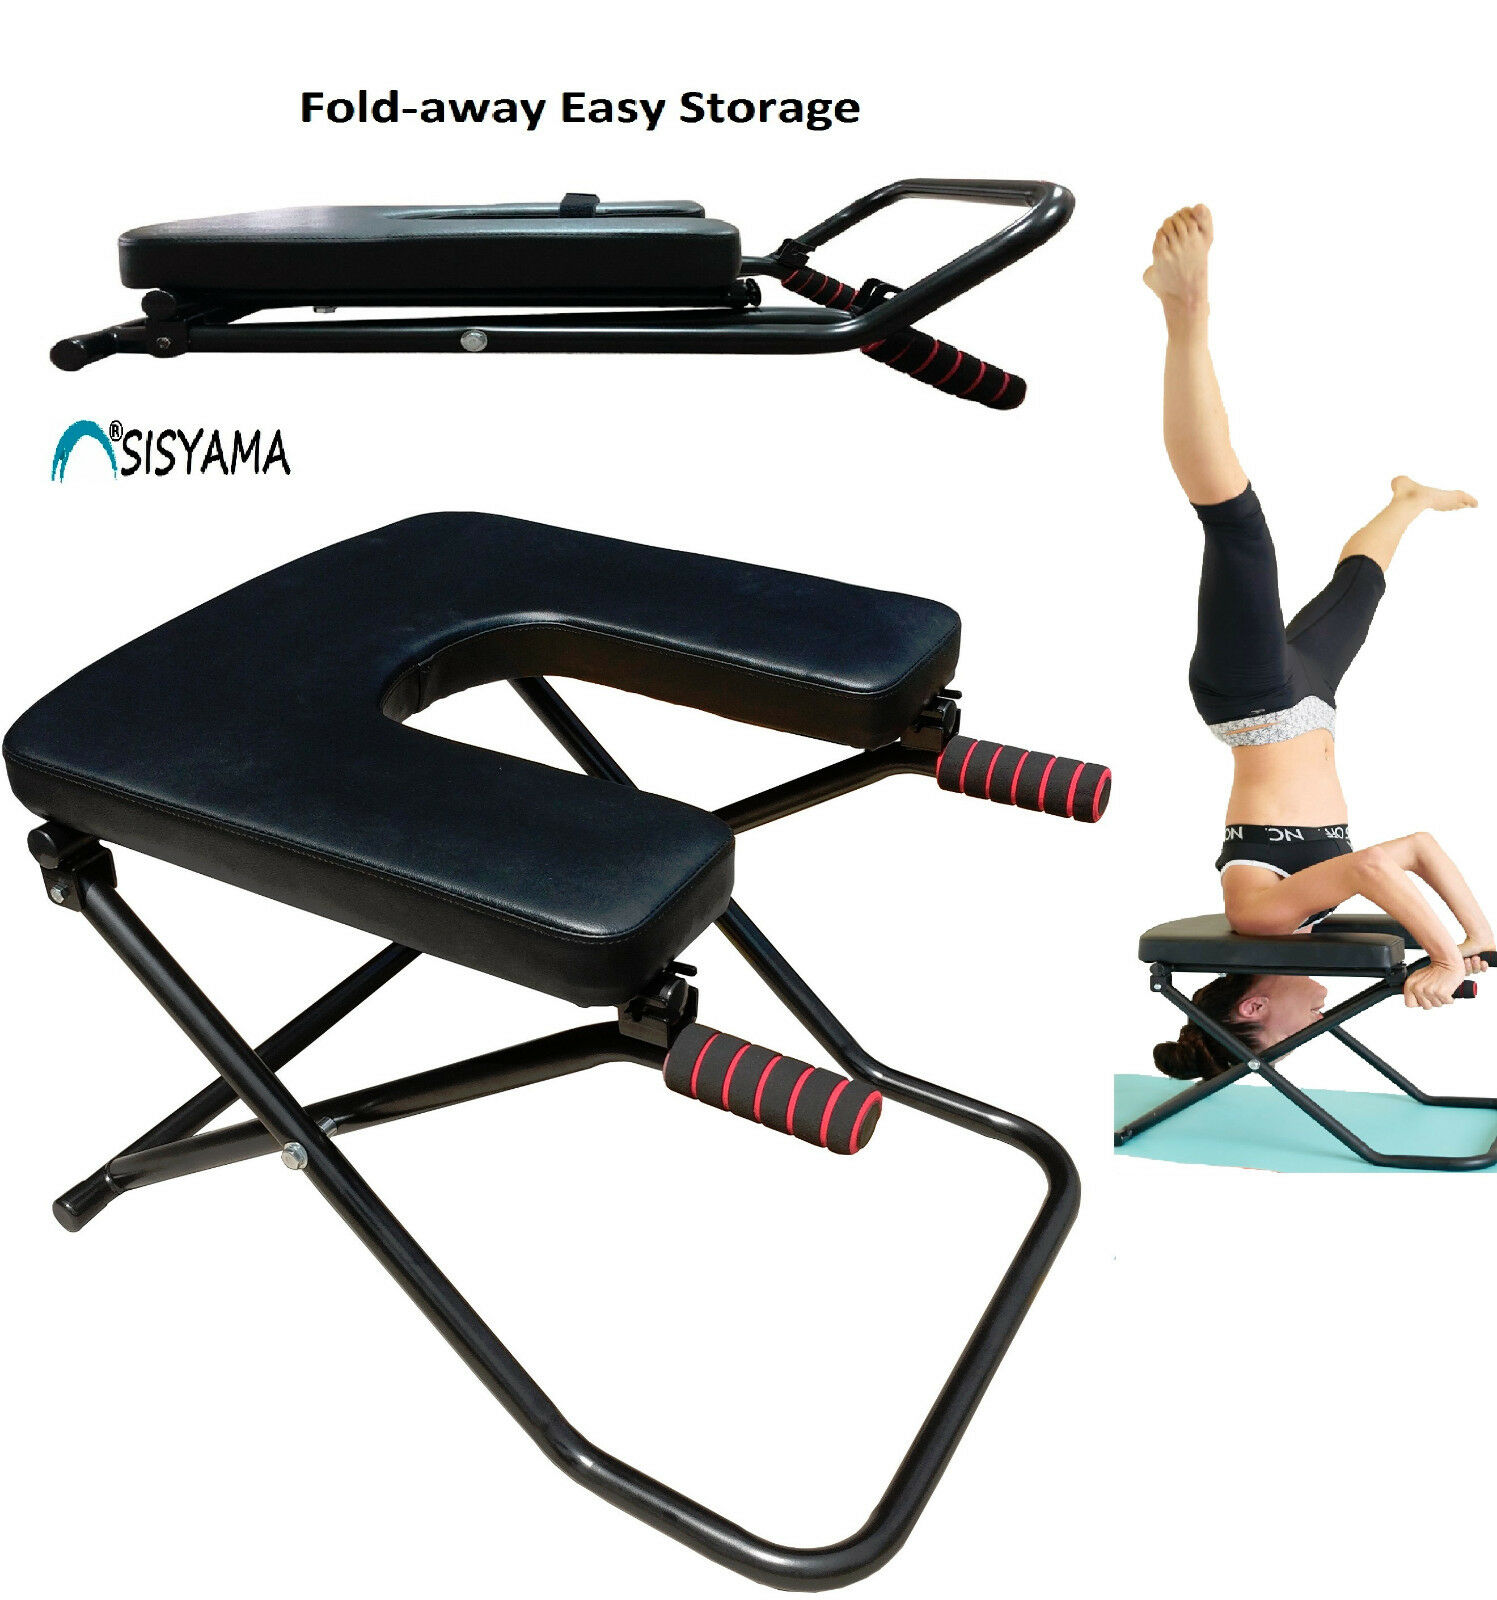 SISYAMA® Fitness Yoga Chair INVERSION BENCH BENCH BENCH + WORKOUT MANUAL Headstand Handstand 86a4f4